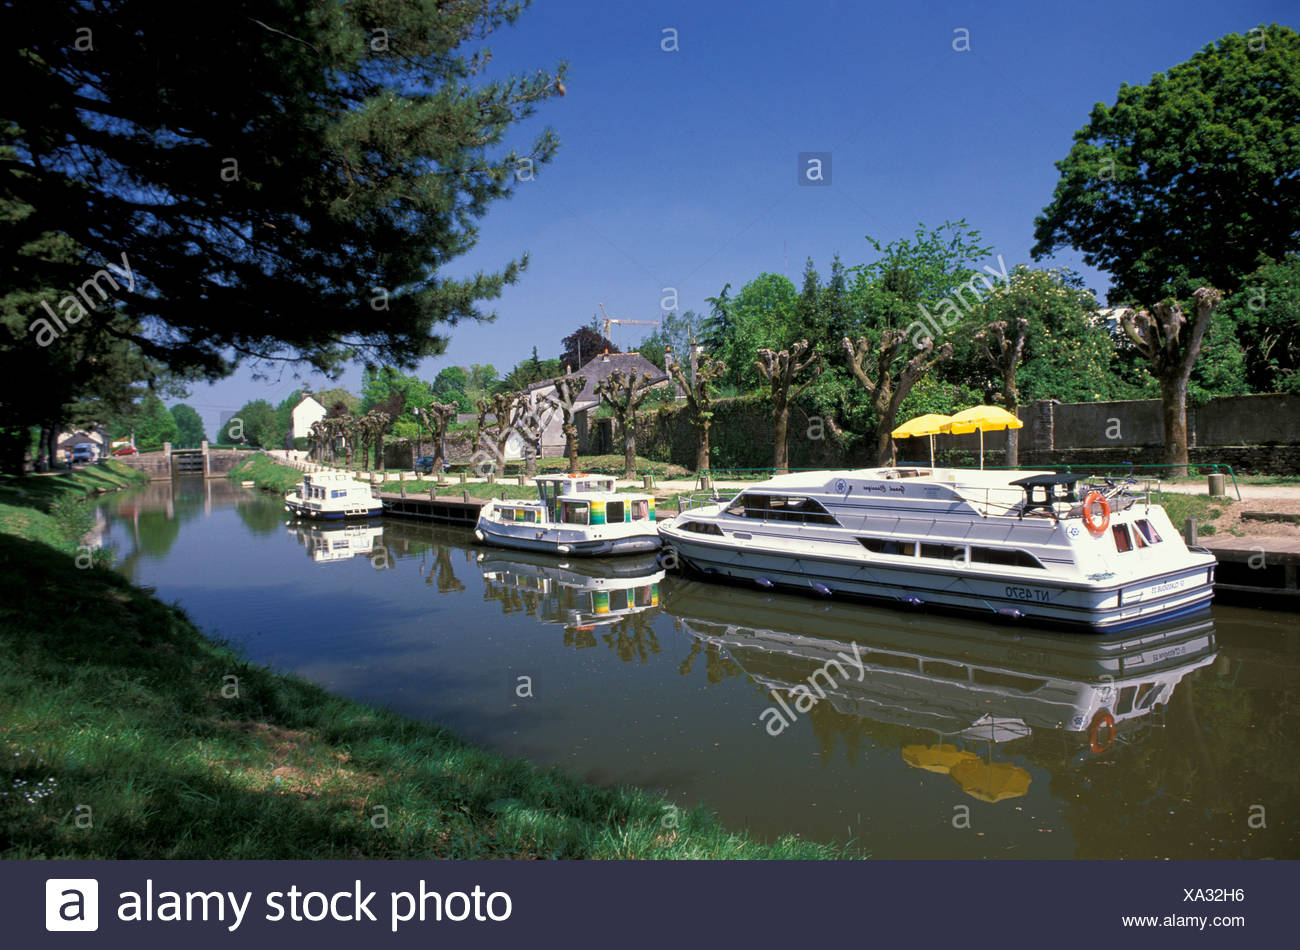 Canal, House boat, Brittany, Summer, France, Europe, boat, holiday - Stock Image